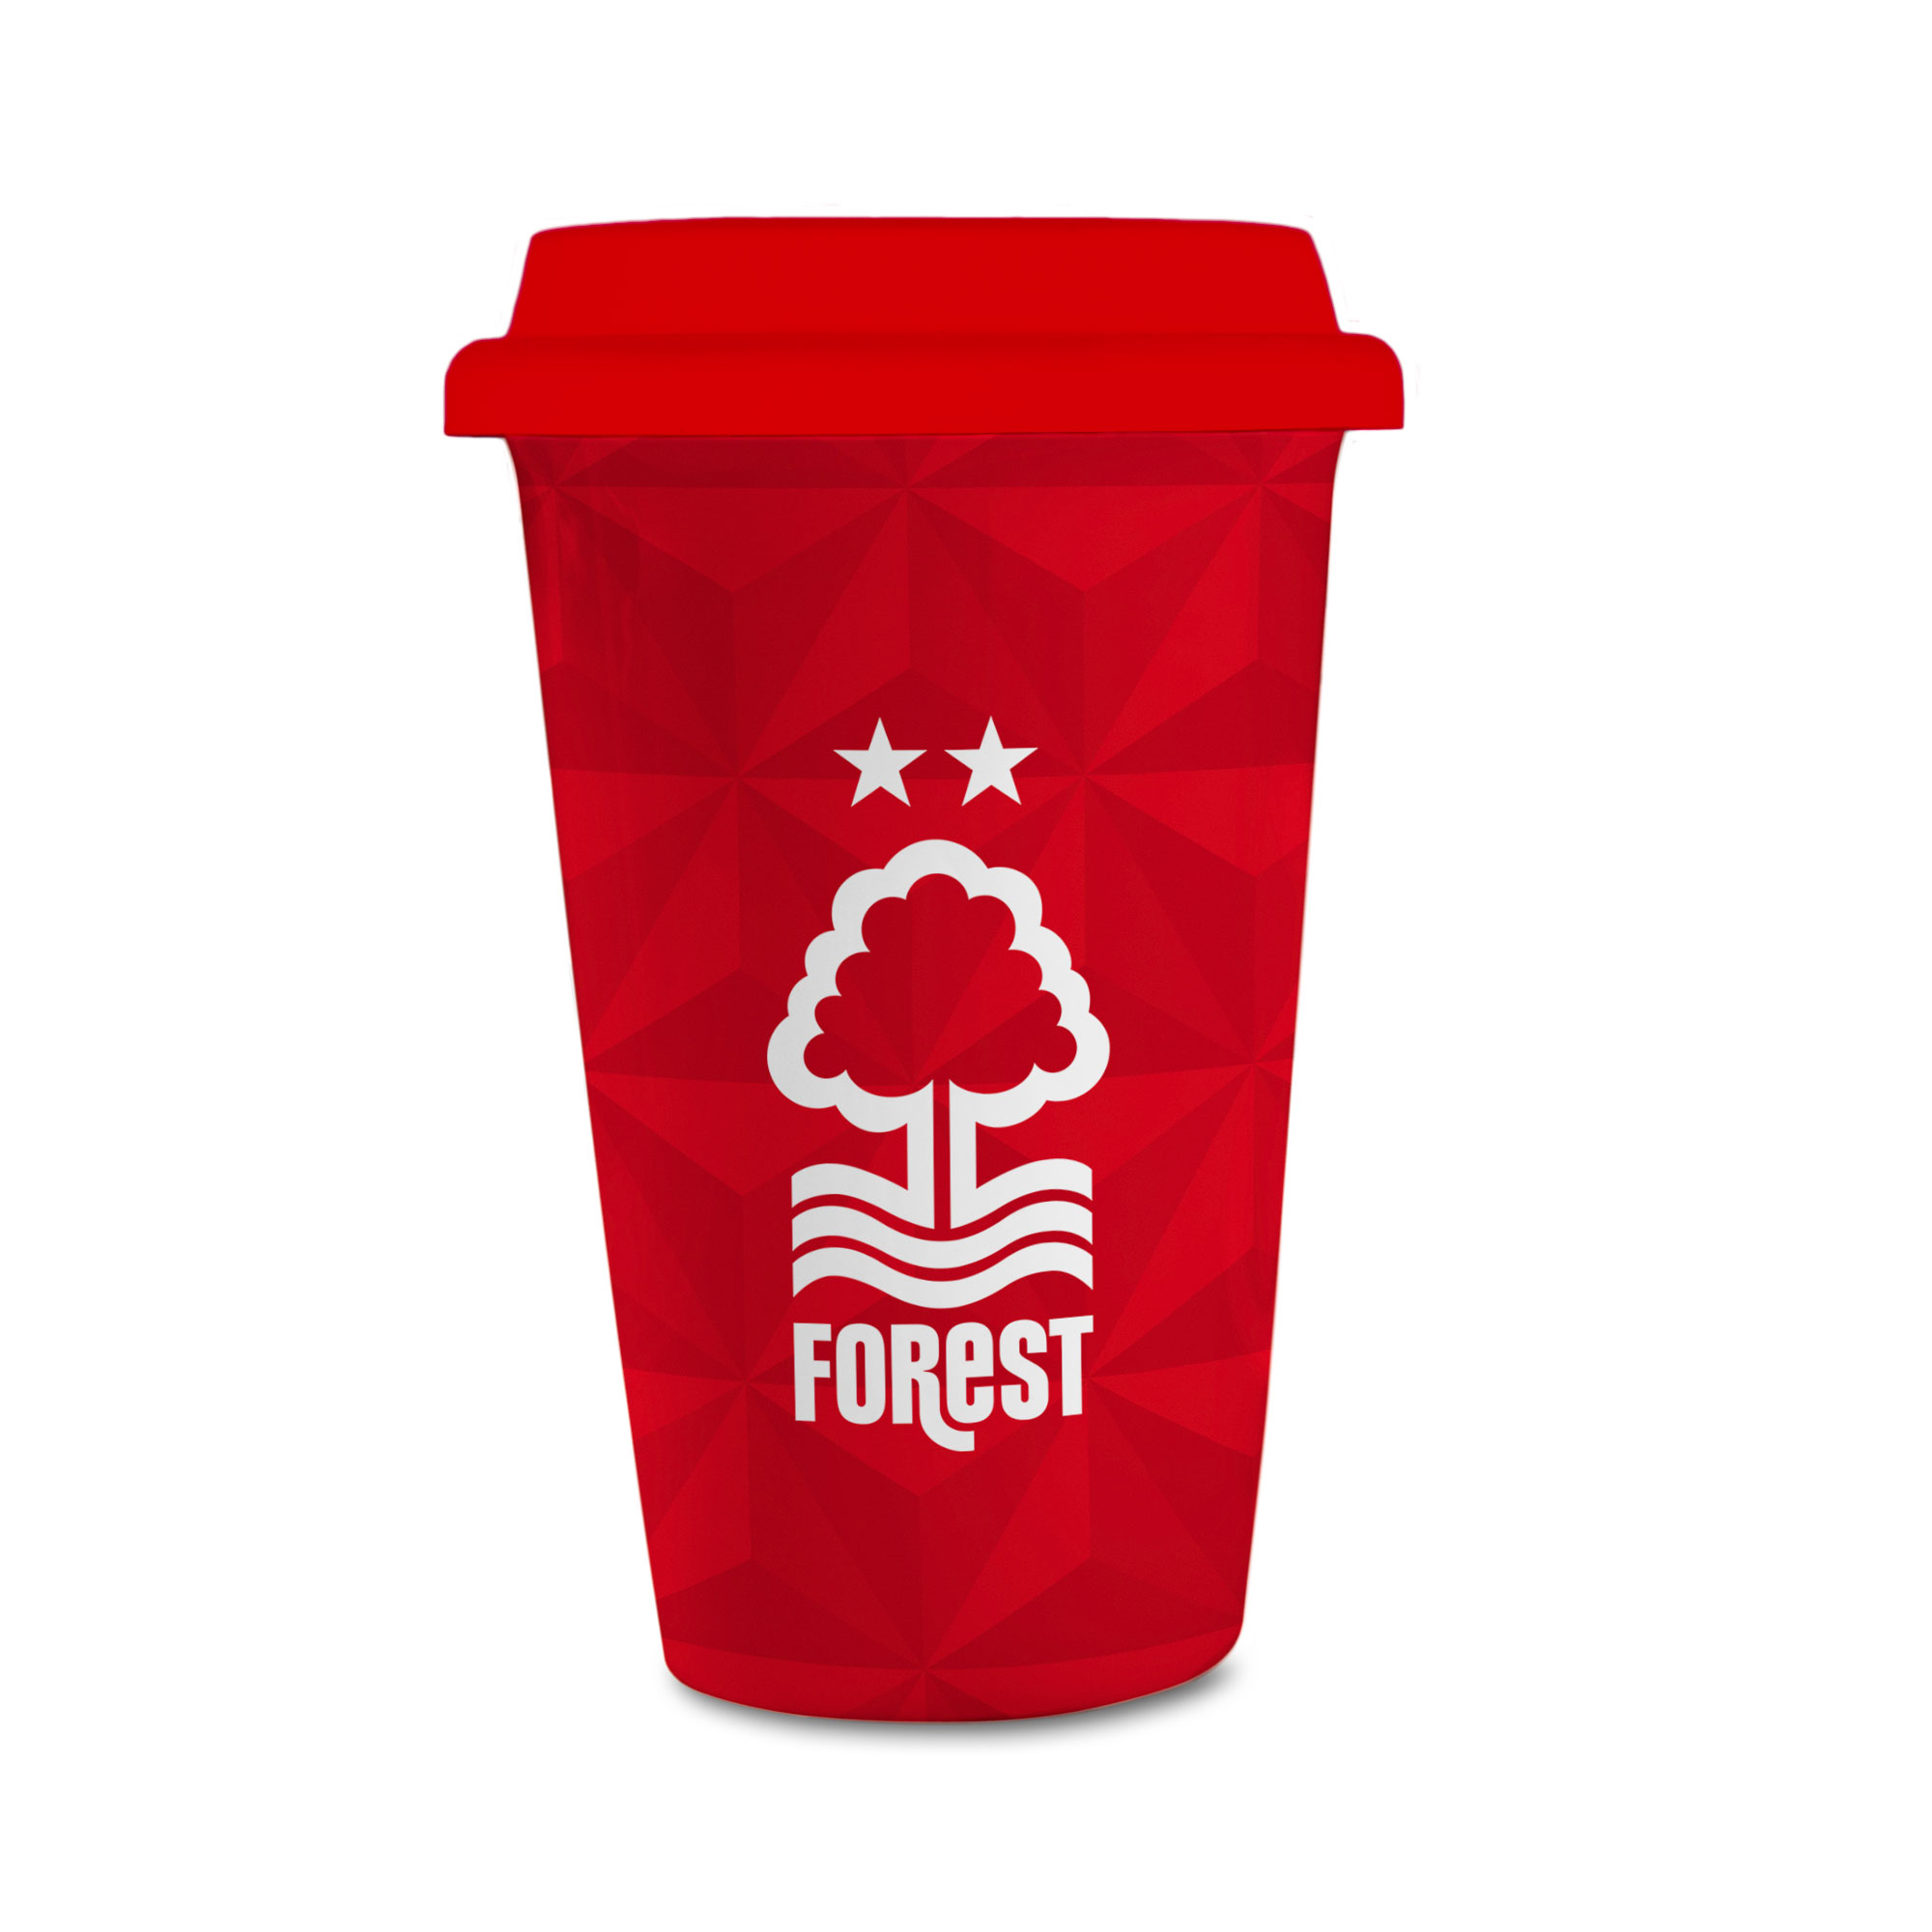 Nottingham Forest FC Crest Reusable Cup